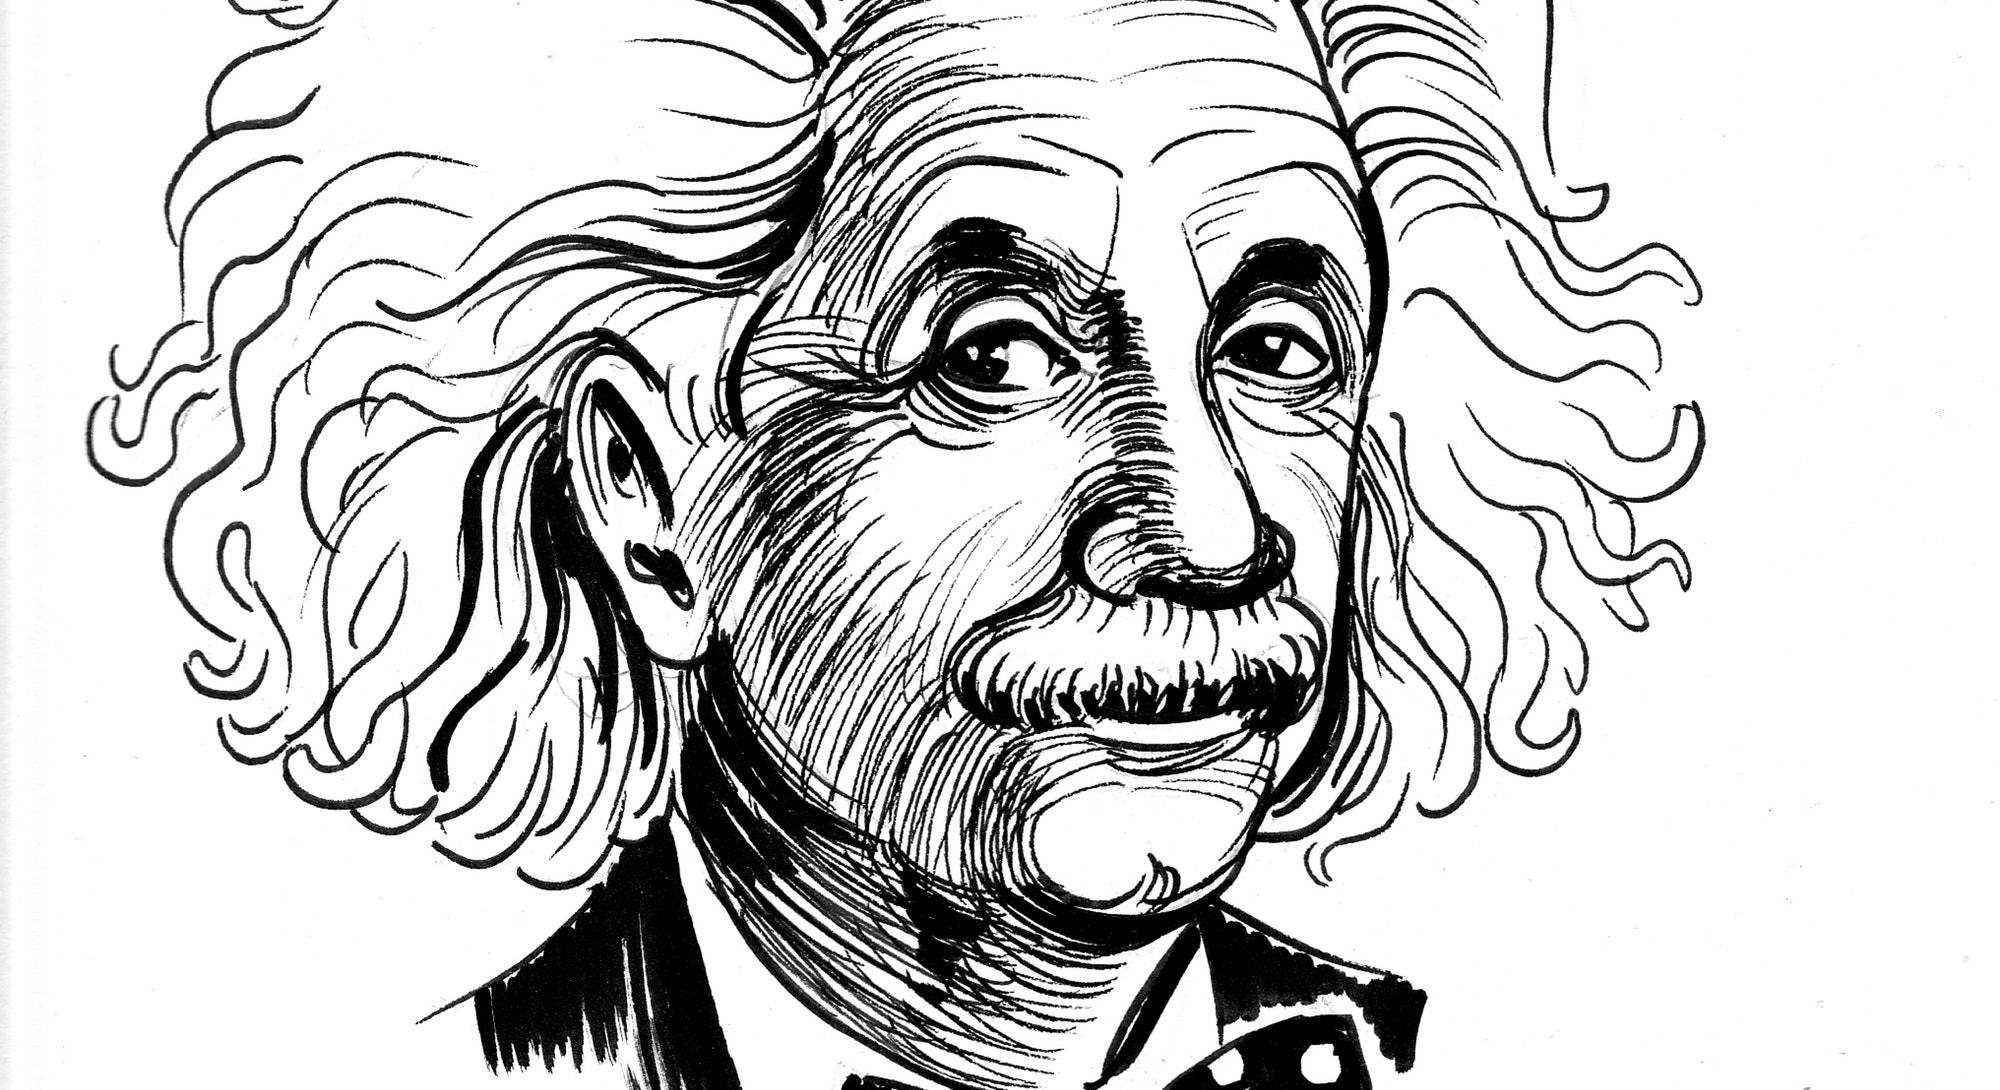 Albert Einstein. Ink black and white cartoon